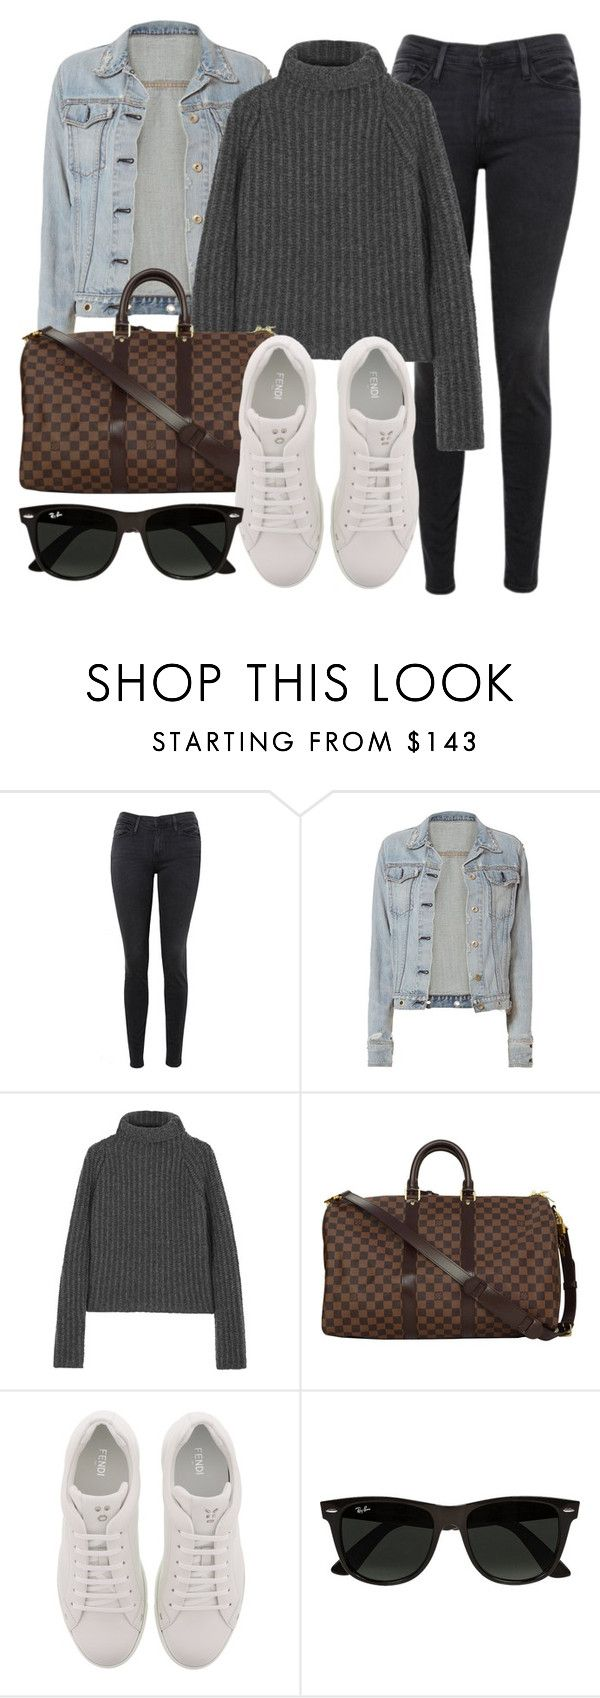 """Sin título #11838"" by vany-alvarado ❤ liked on Polyvore featuring Frame, rag & bone, Haider Ackermann, Louis Vuitton, Fendi and Ray-Ban"